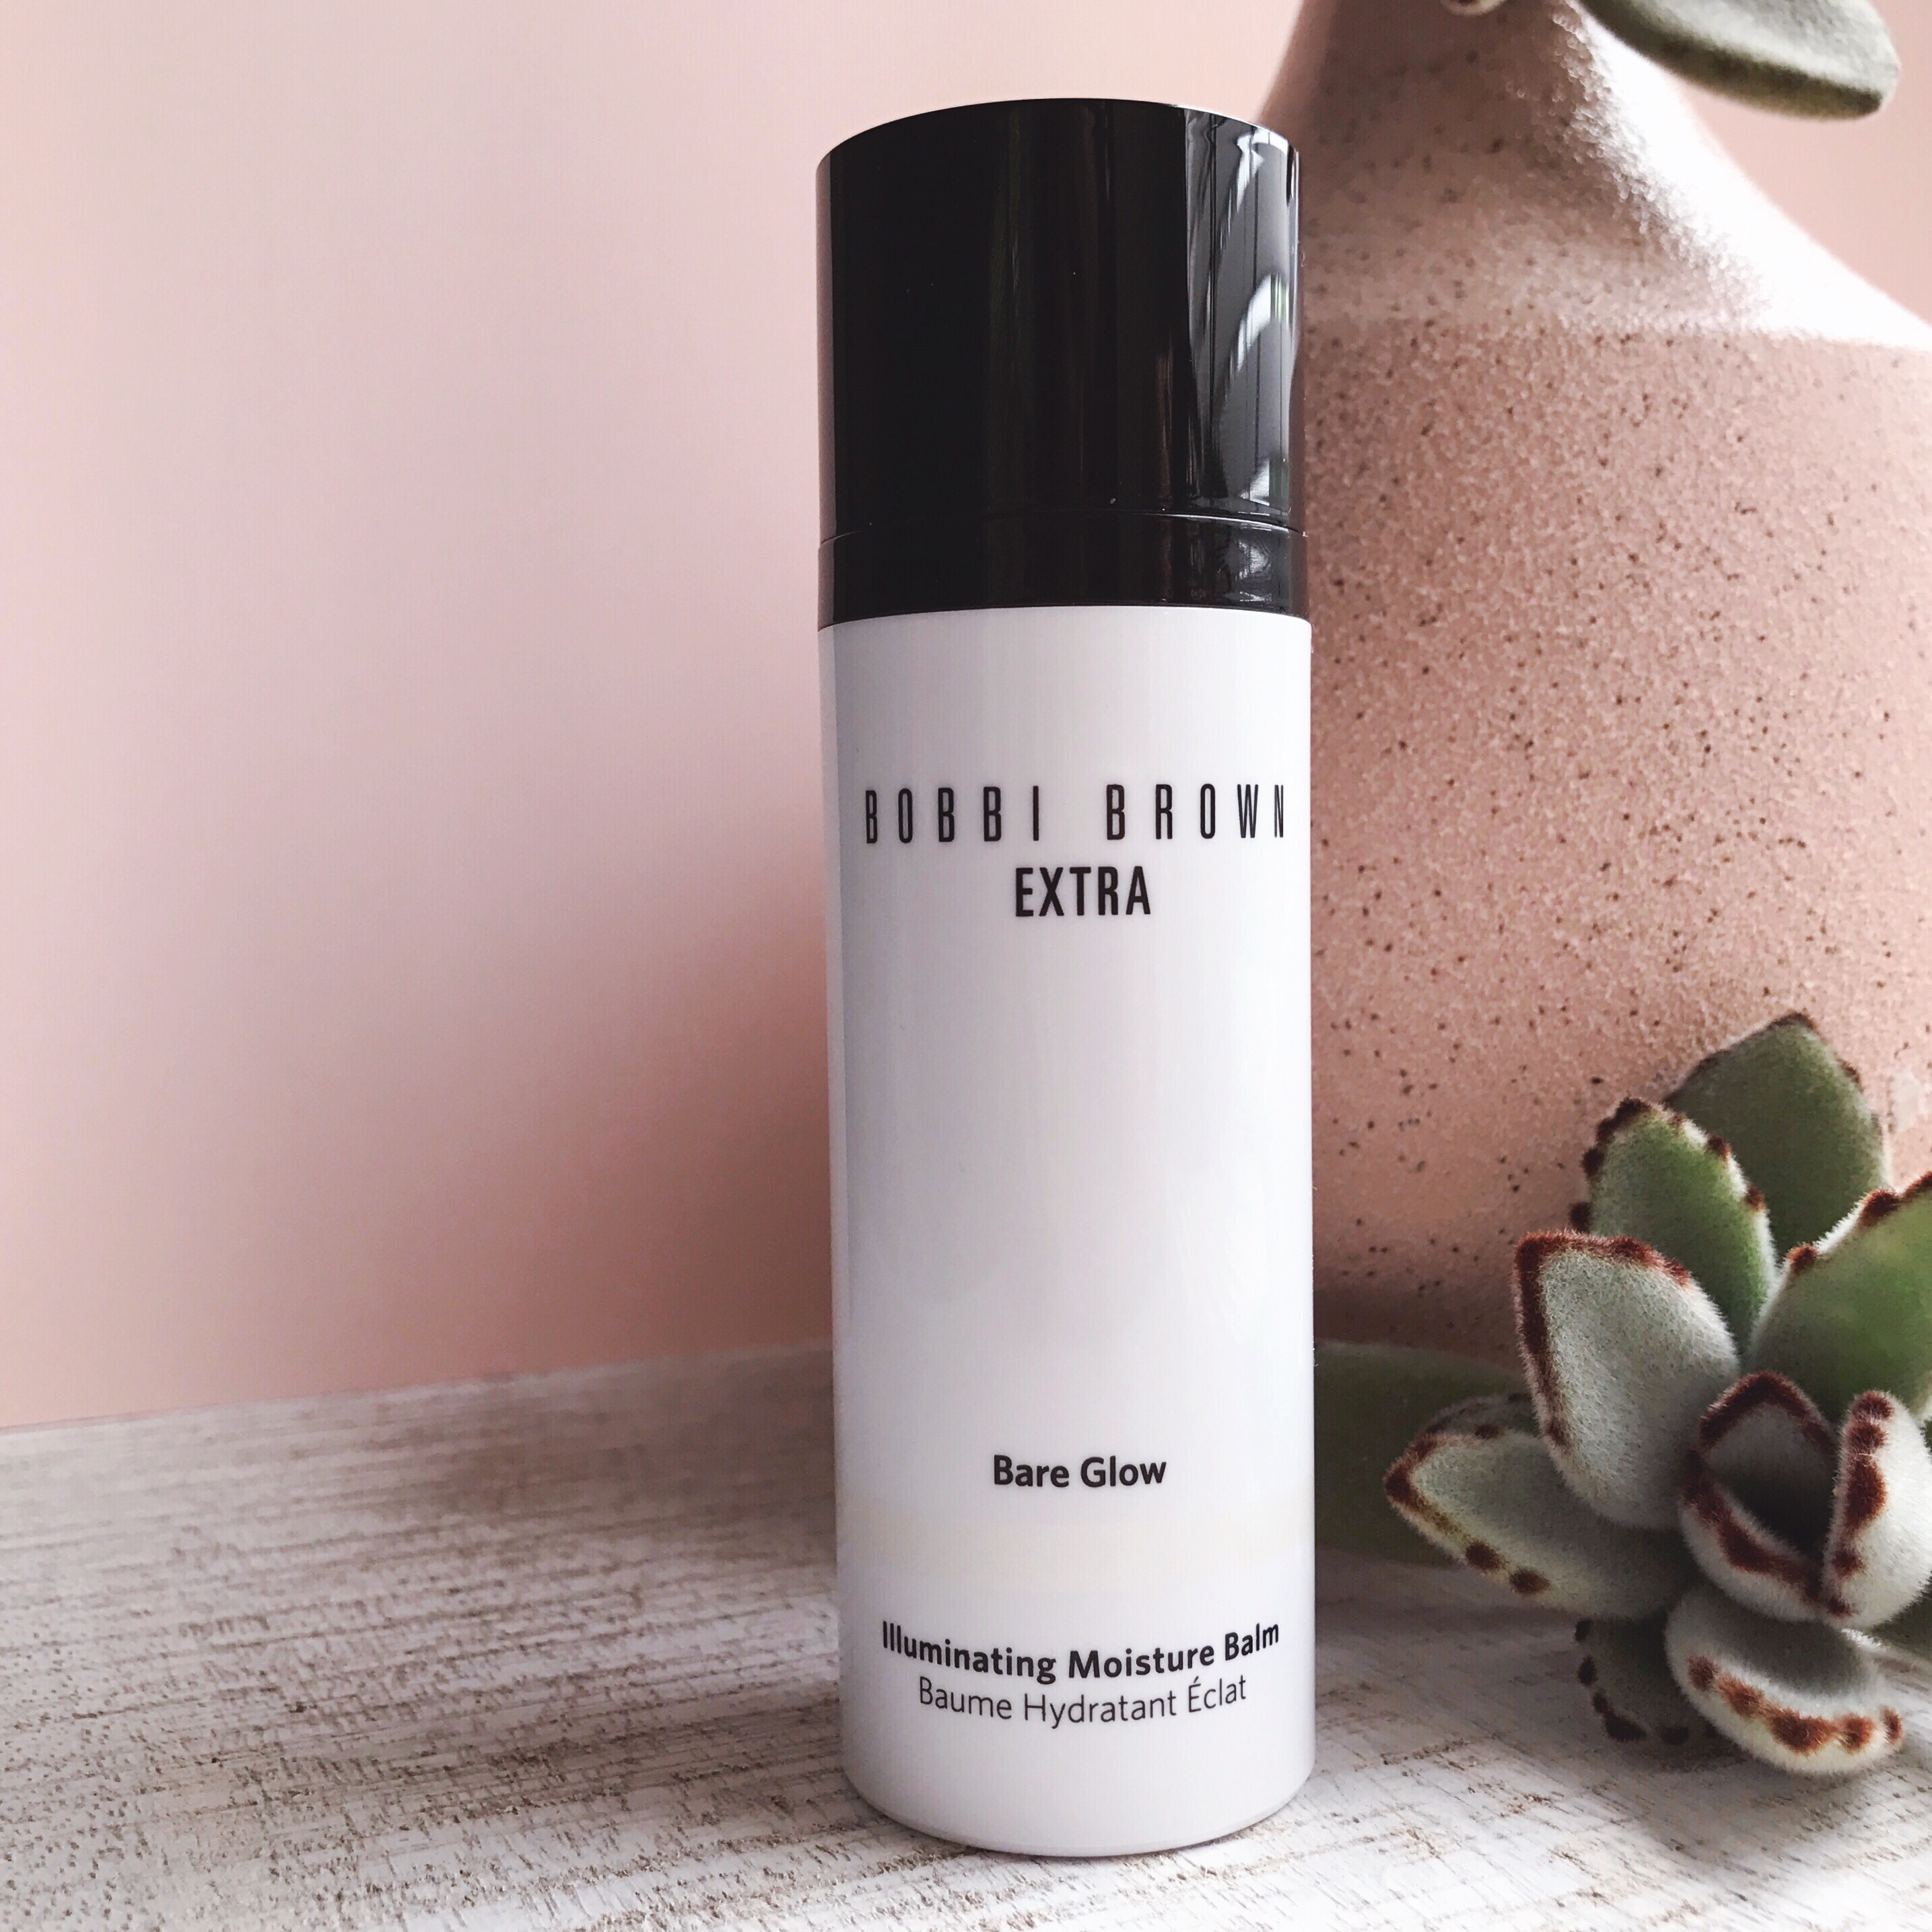 Bobbi Brown Extra Bare Glow Illuminating Moisture Balm